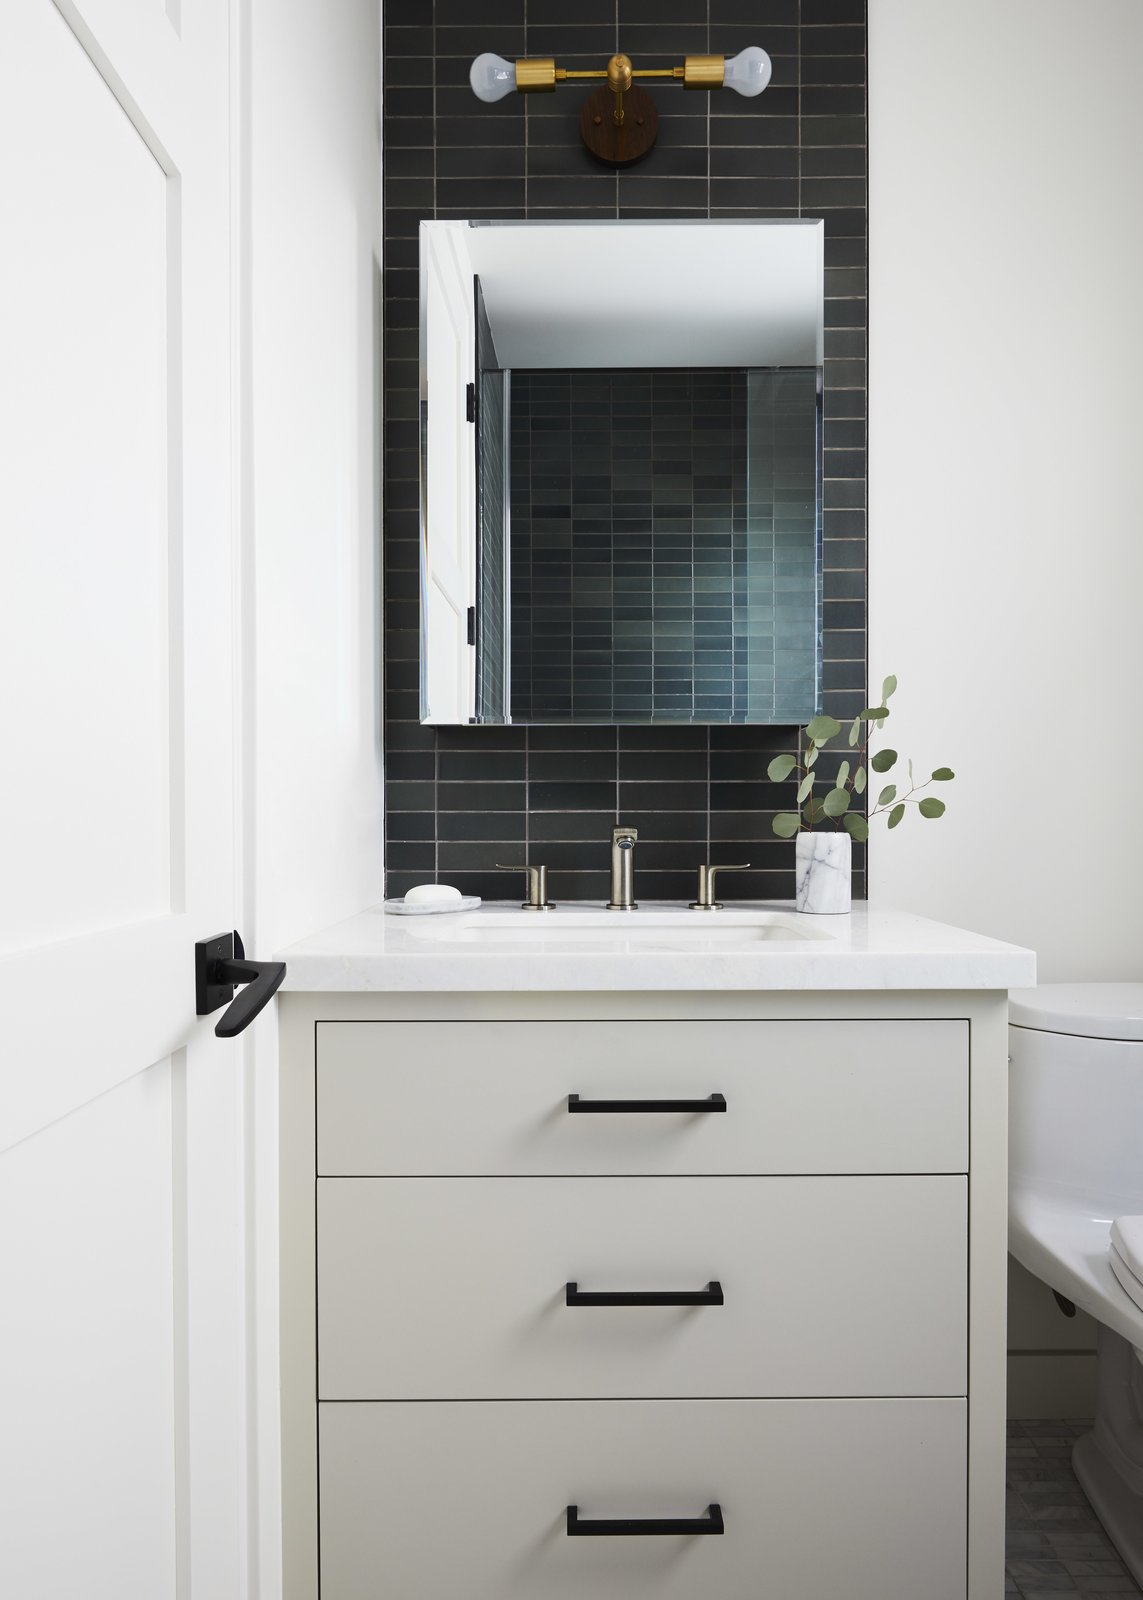 Bath Room, Wall Lighting, Ceramic Tile Wall, Marble Counter, and Undermount Sink Guest Bathroom  The Strand Residence